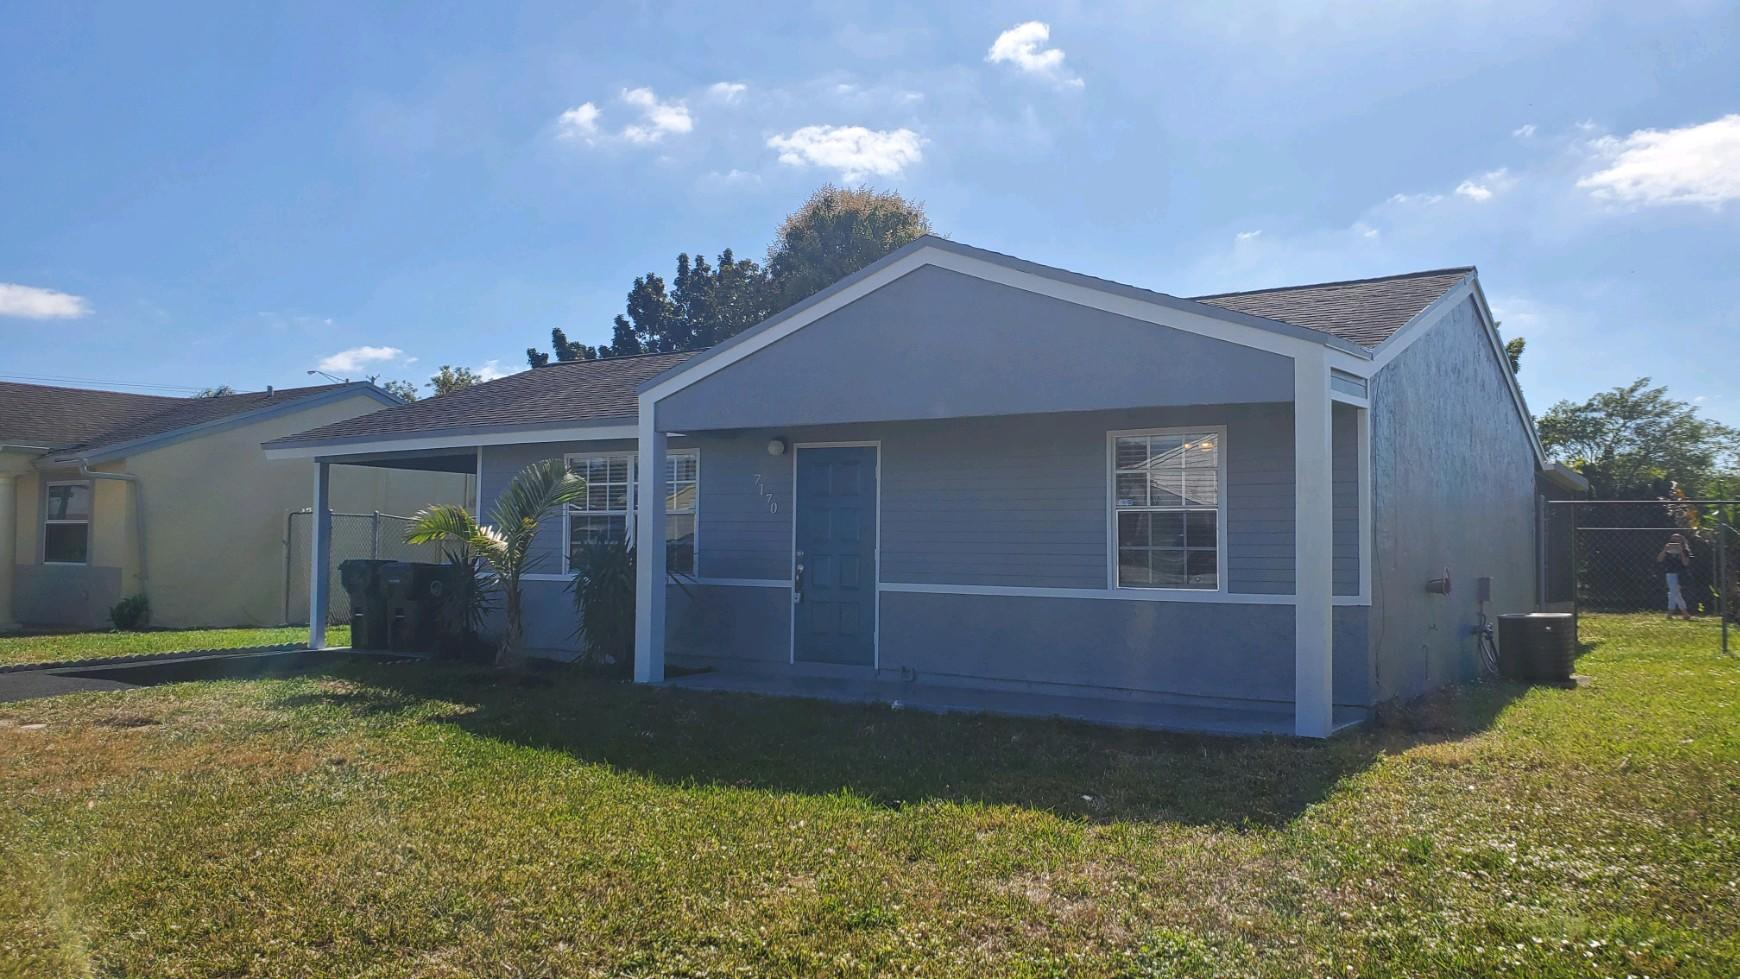 Home for sale in The Hamptons North Lauderdale Florida